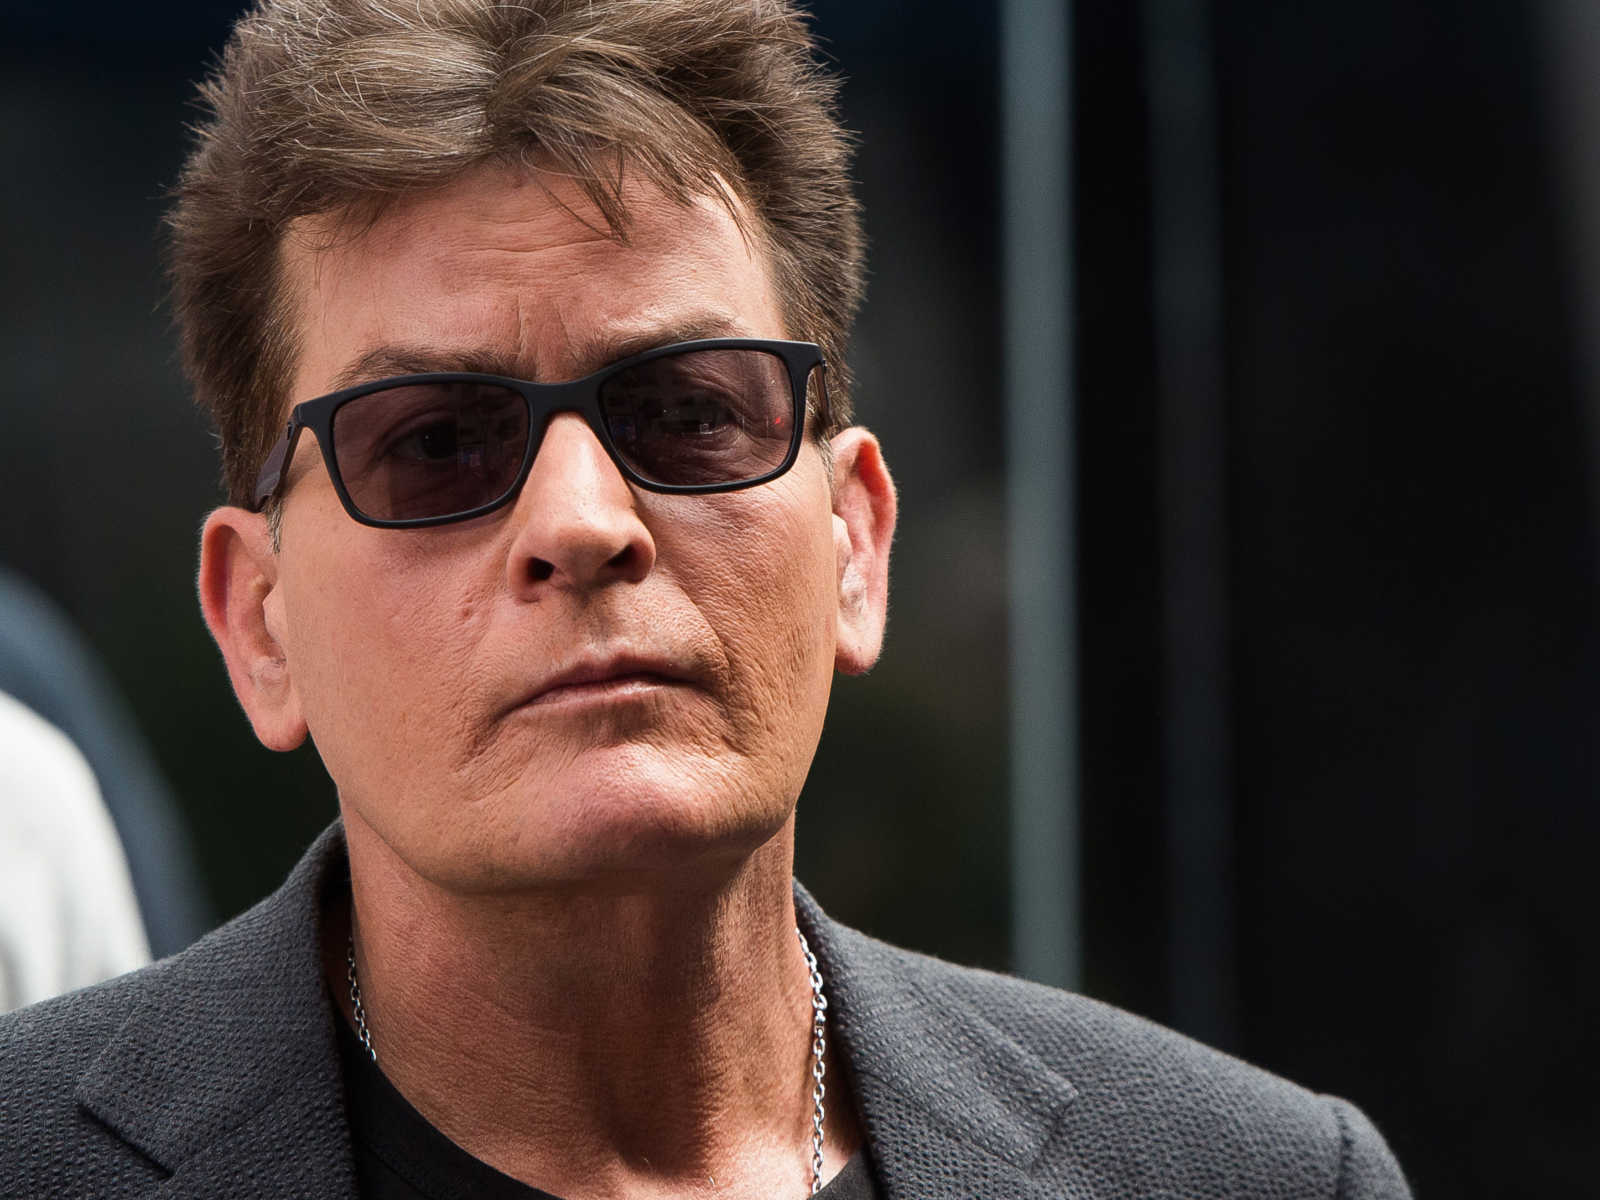 Charlie Sheen Sues National Enquirer Over Corey Haim Sexual Assault Accusations